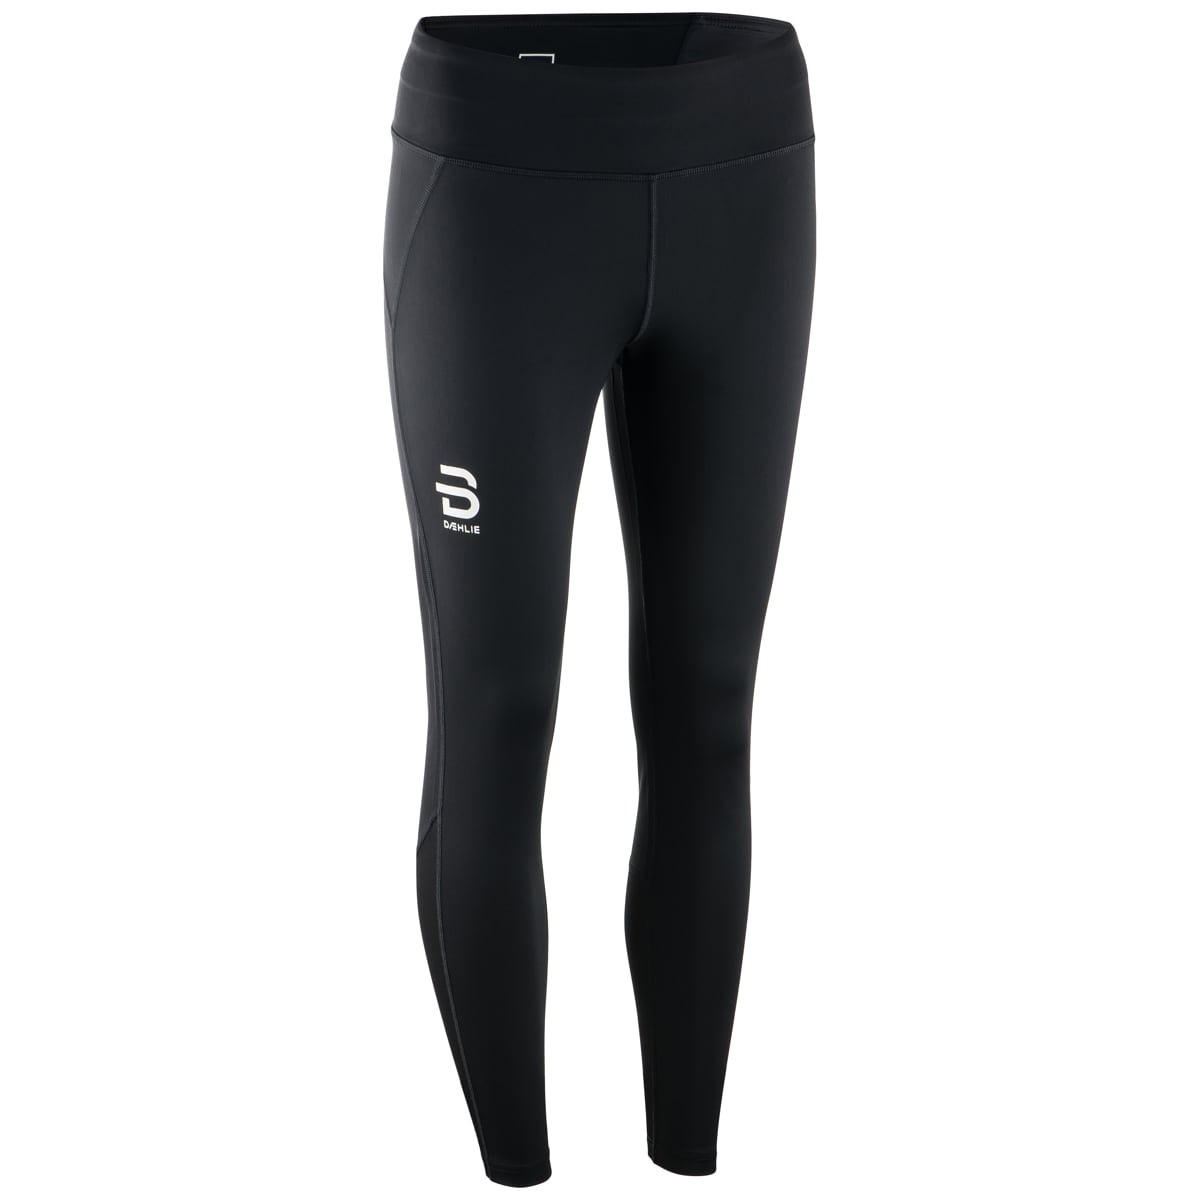 8e1a7fb6 Bjørn Dæhlie Tights Focus Women's Black | Fjellsport.no